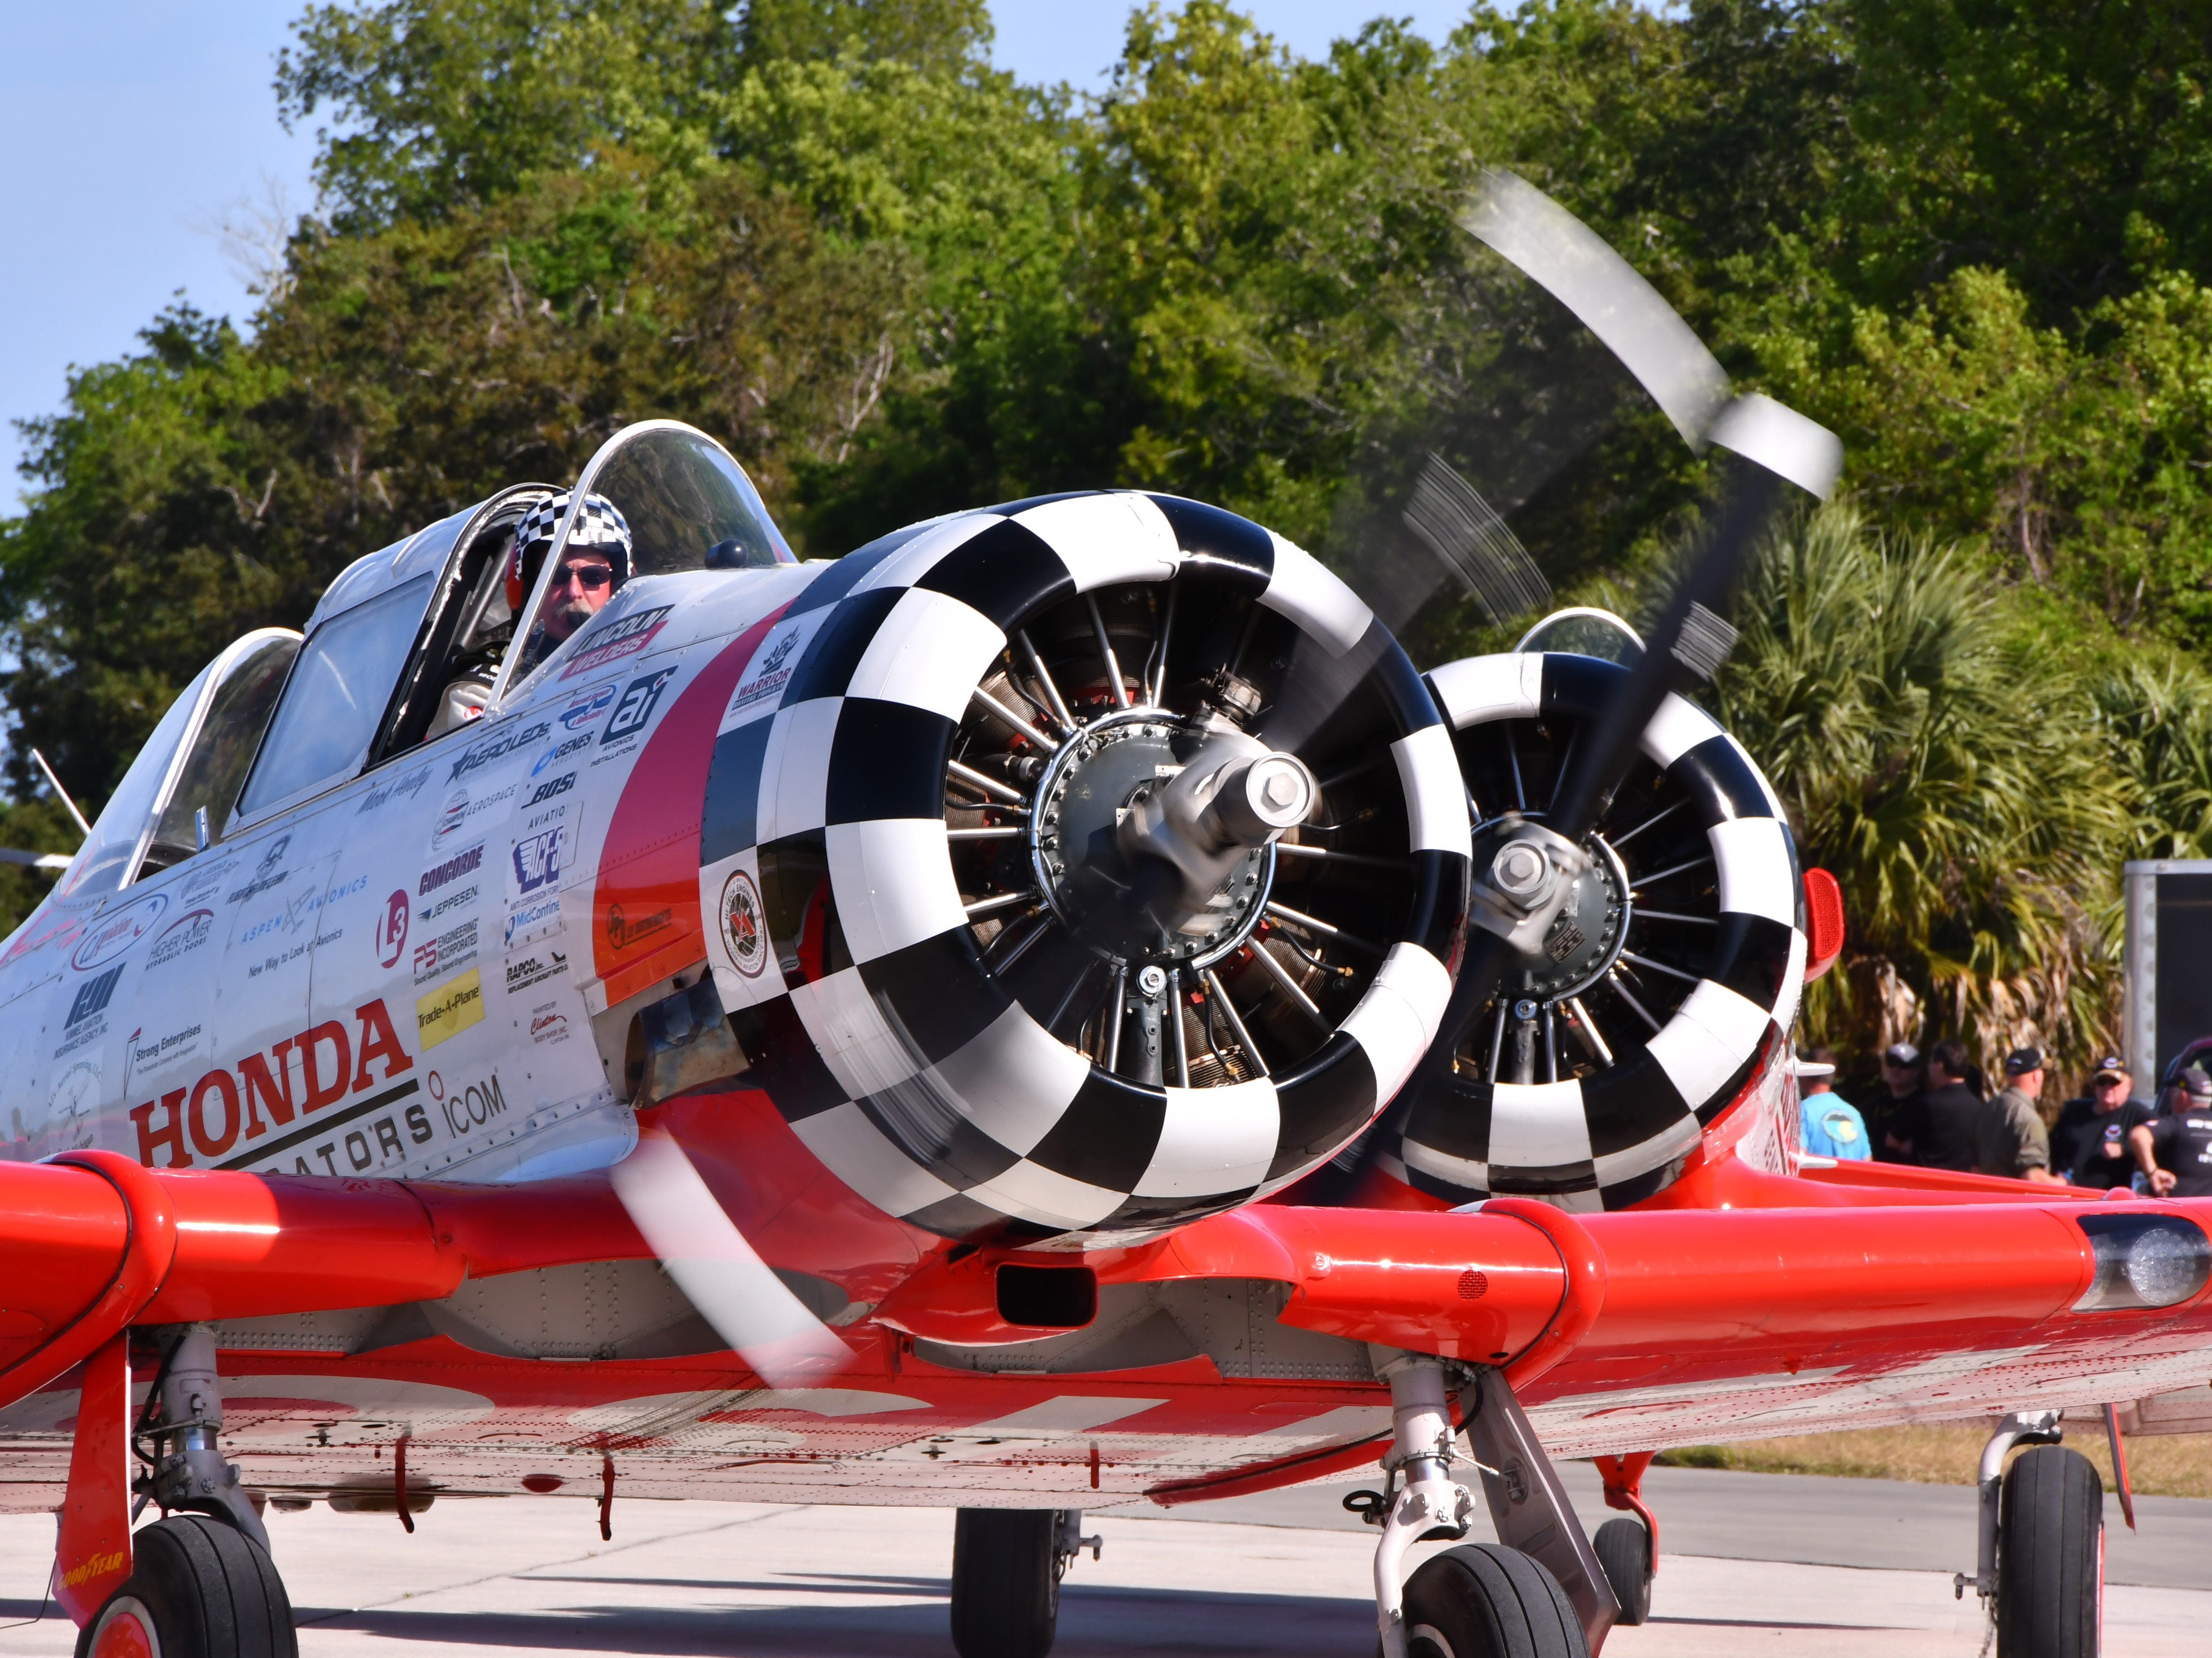 The Aeroshell Aerobatic team prepares for take off. The 2019 Space Coast Warbird Air Show held their media day Thursday, promoting the Air Show that runs Friday, Saturday and Sunday at Space Coast Regional Airport in Titusville, with a Friday afternoon and evening show with fireworks, and shows Saturday and Sunday afternoon.